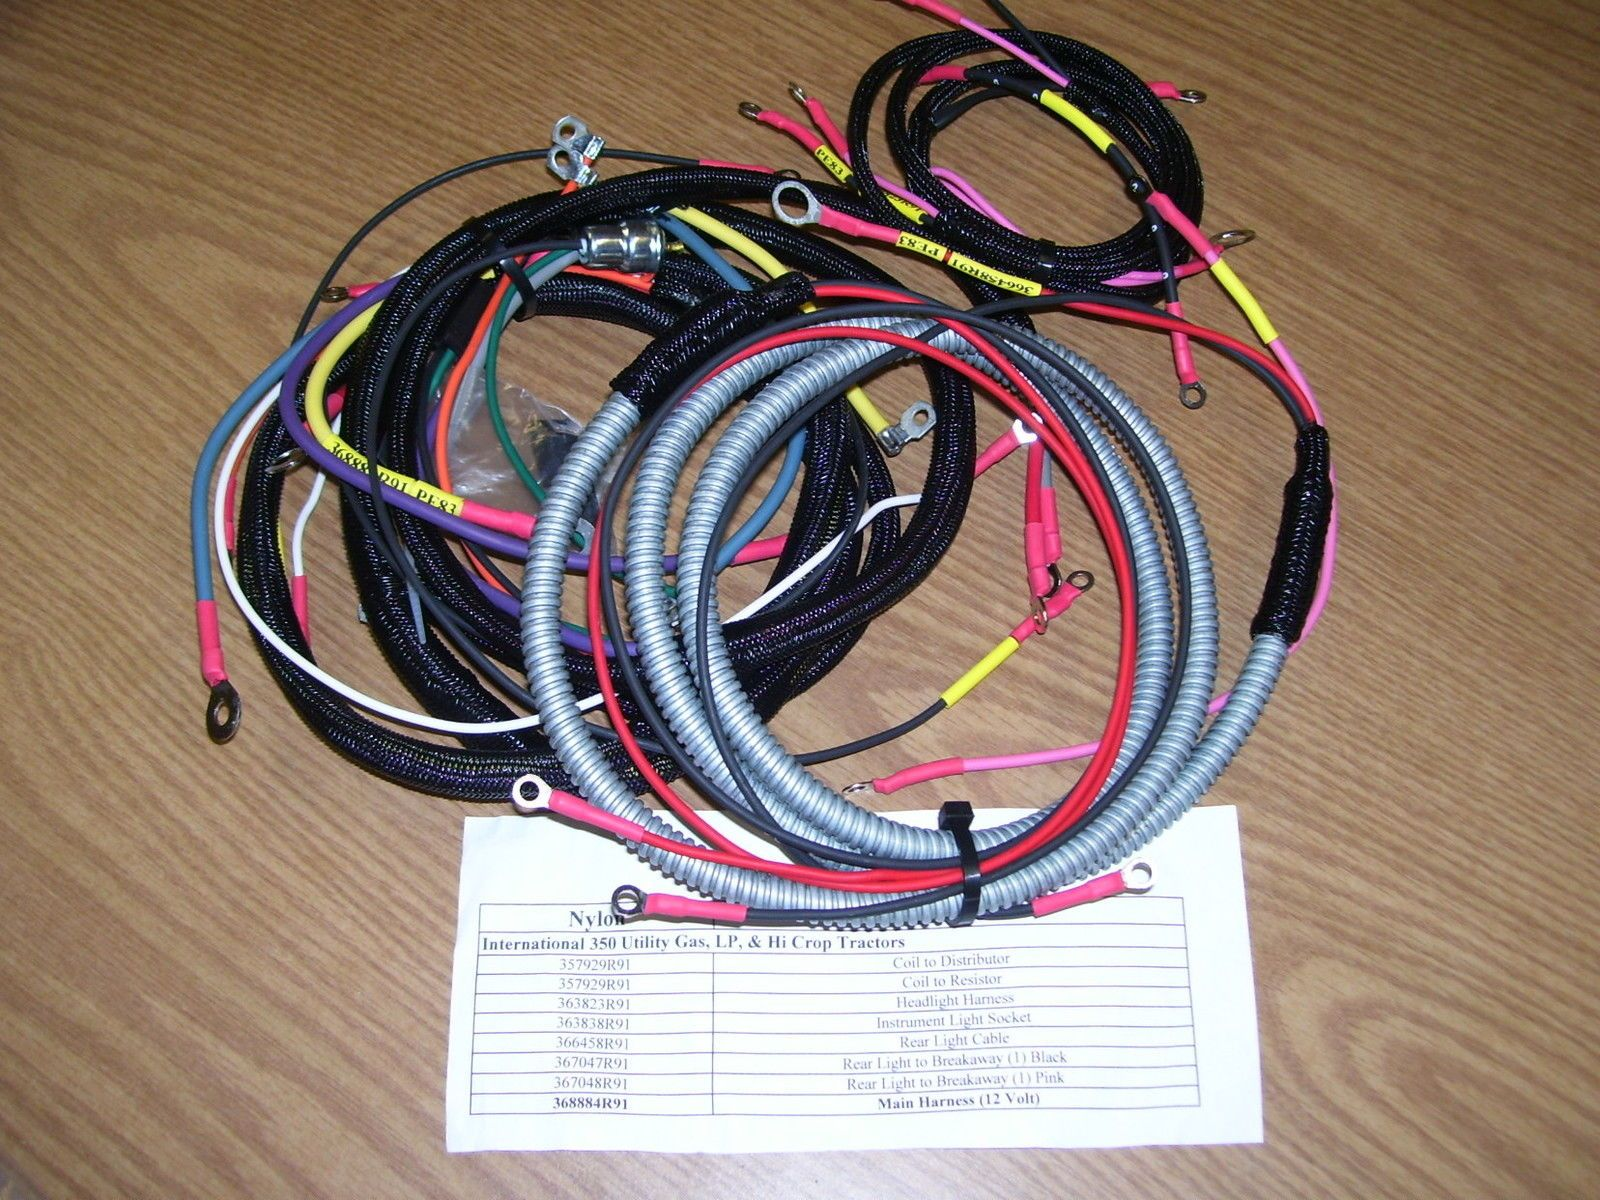 Other Lawnmowers 159929 International 350 Utility Gas Tractor 12v Farmall Cub Wiring Harness Harnesses 8 Included In